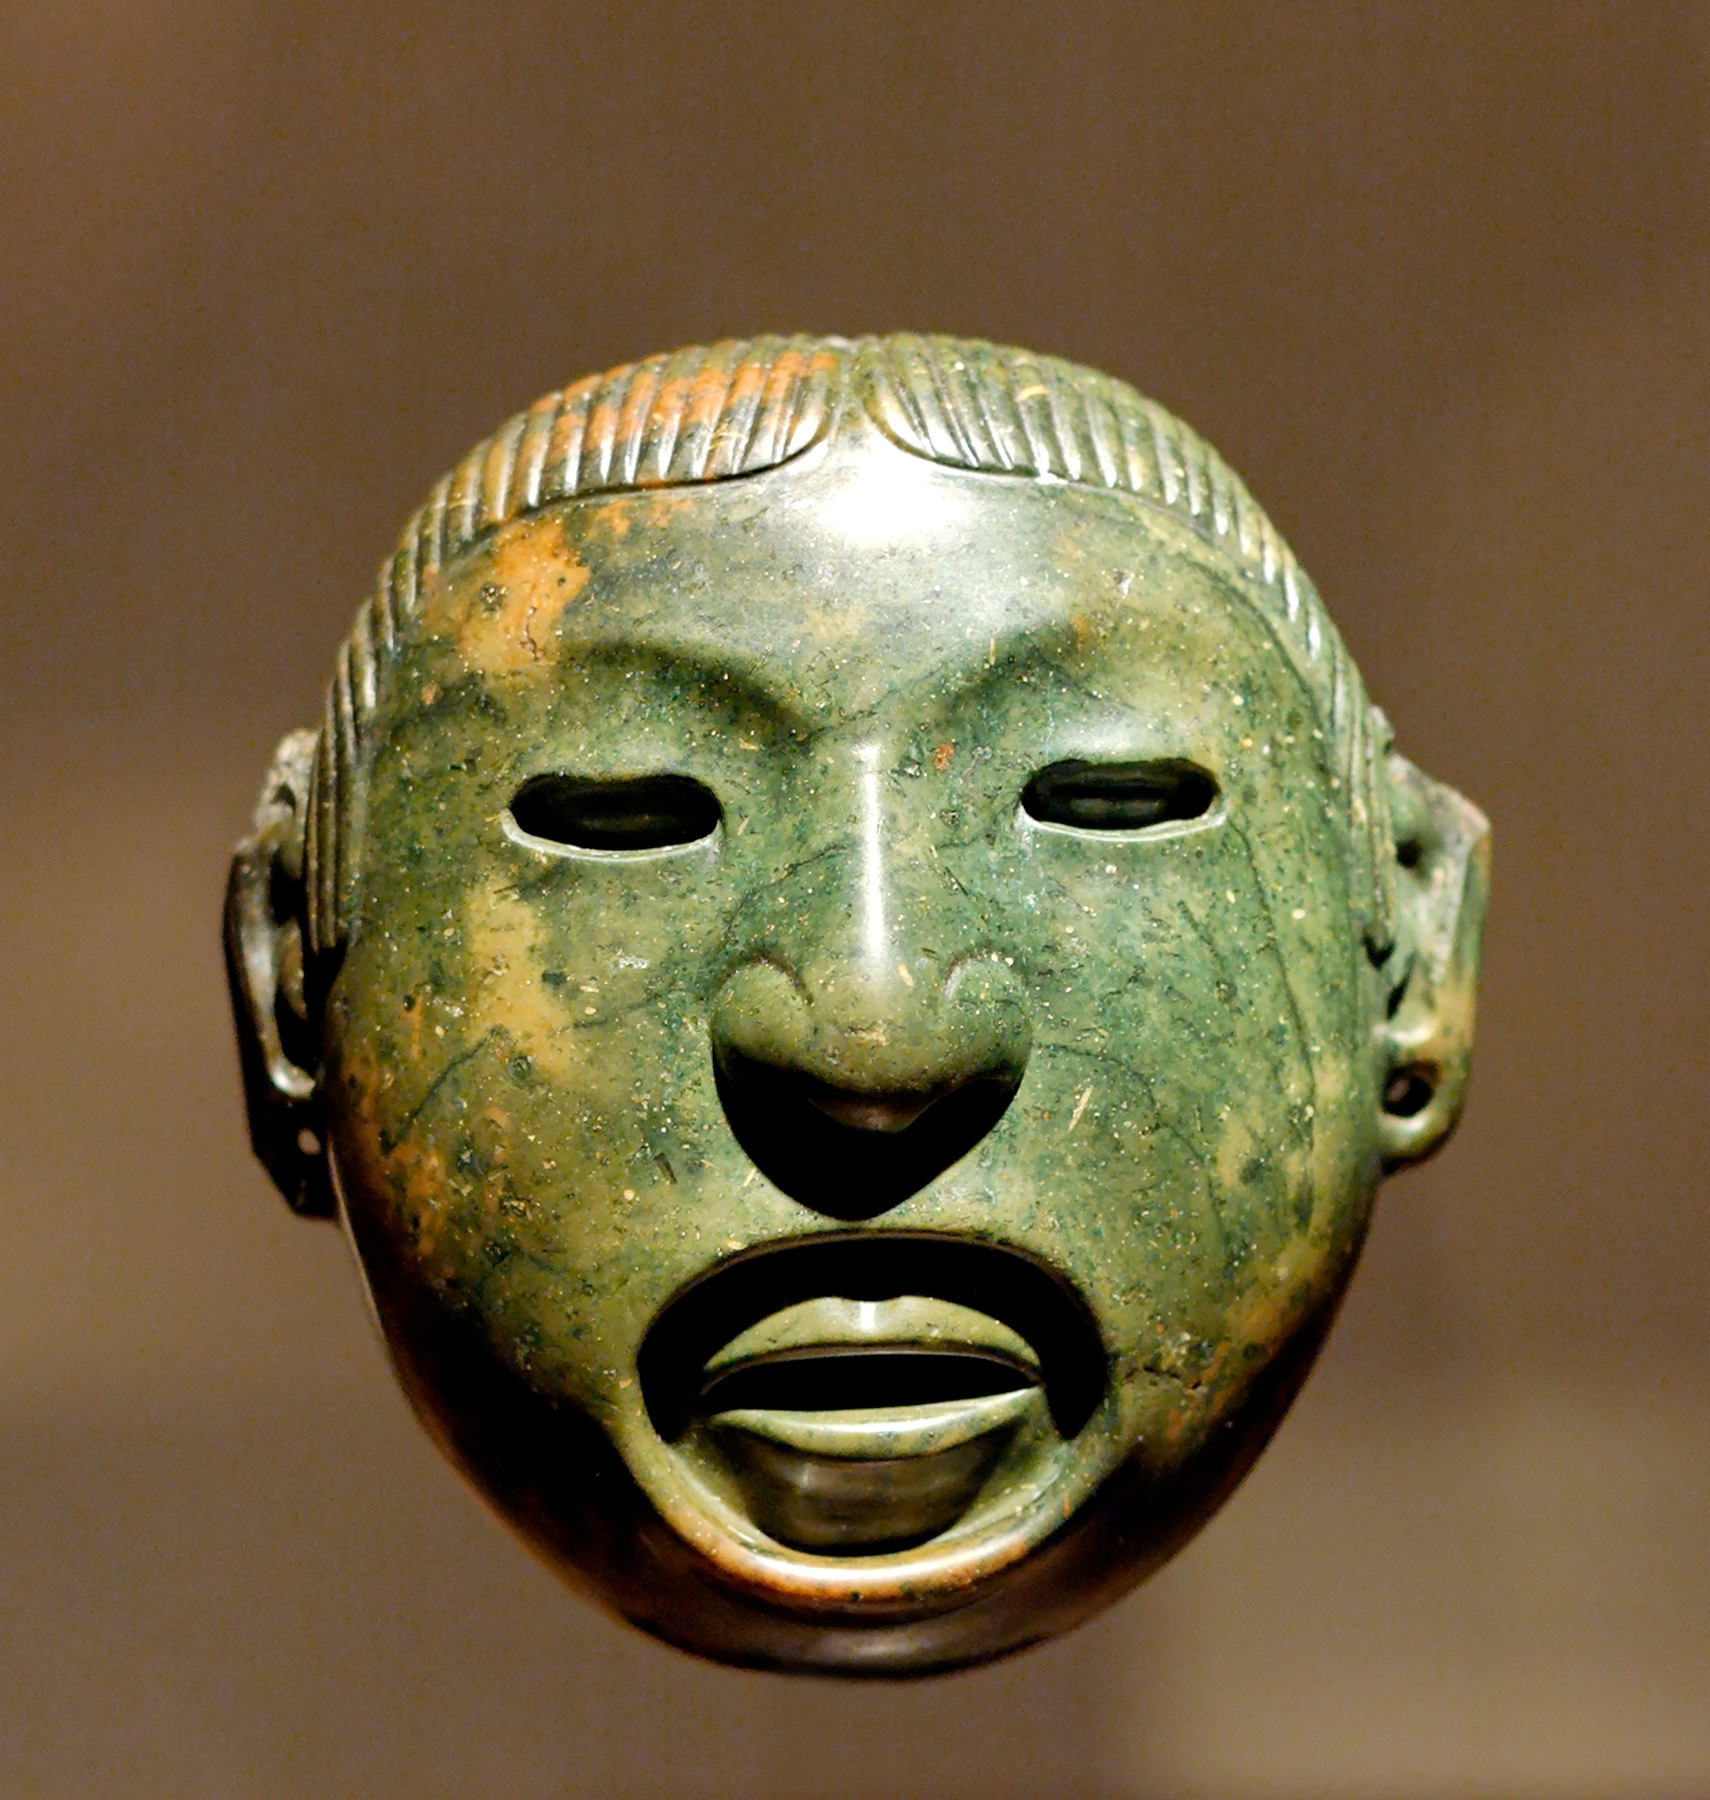 The Blue Jade Mask